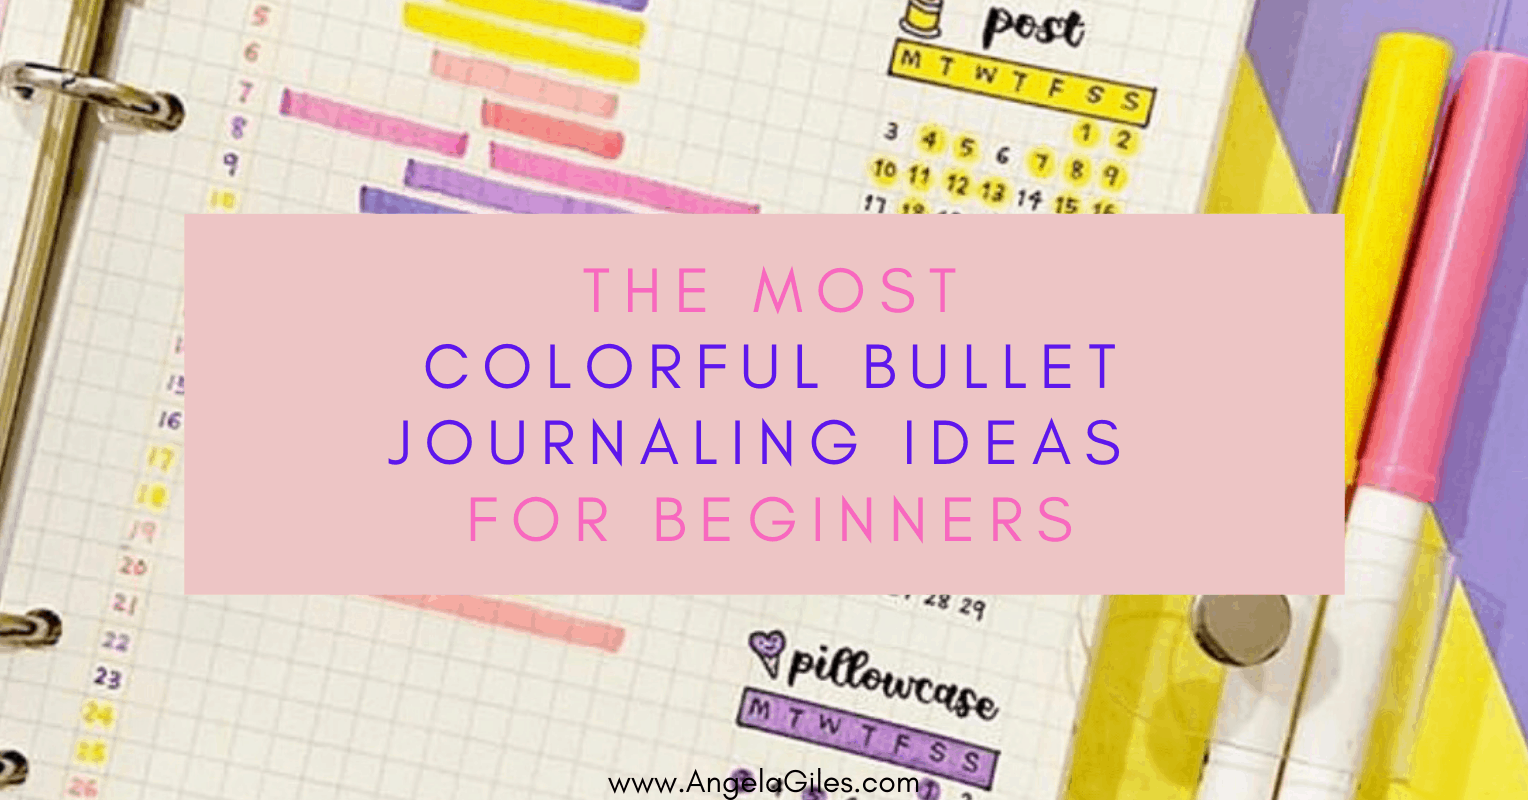 The Most Colorful Bullet Journaling Ideas for Beginners